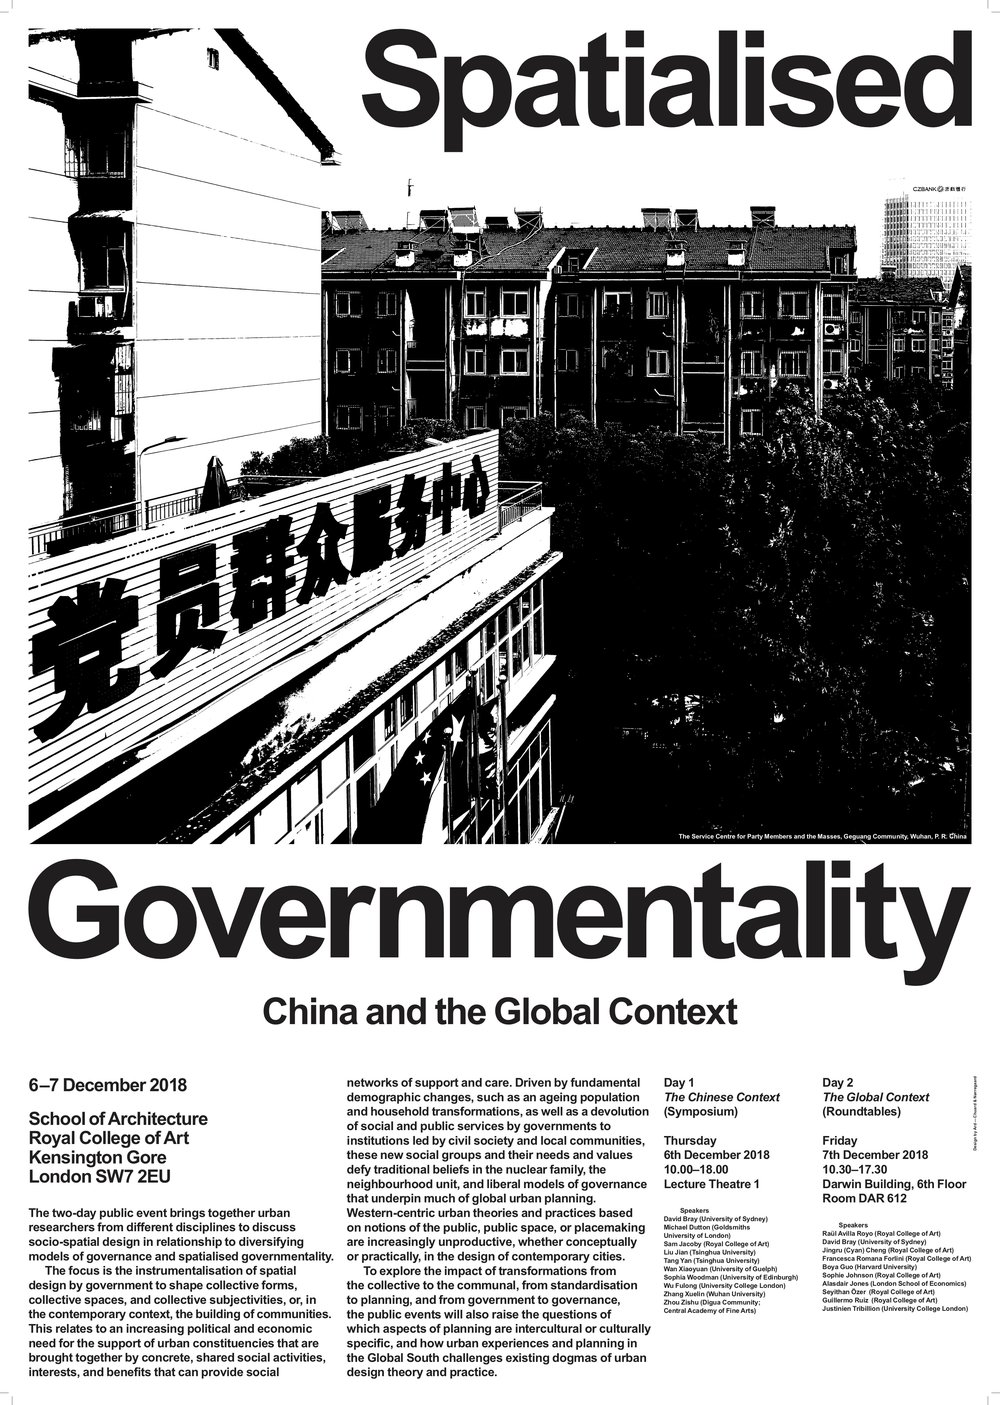 Spatialised Governmentality Event Poster